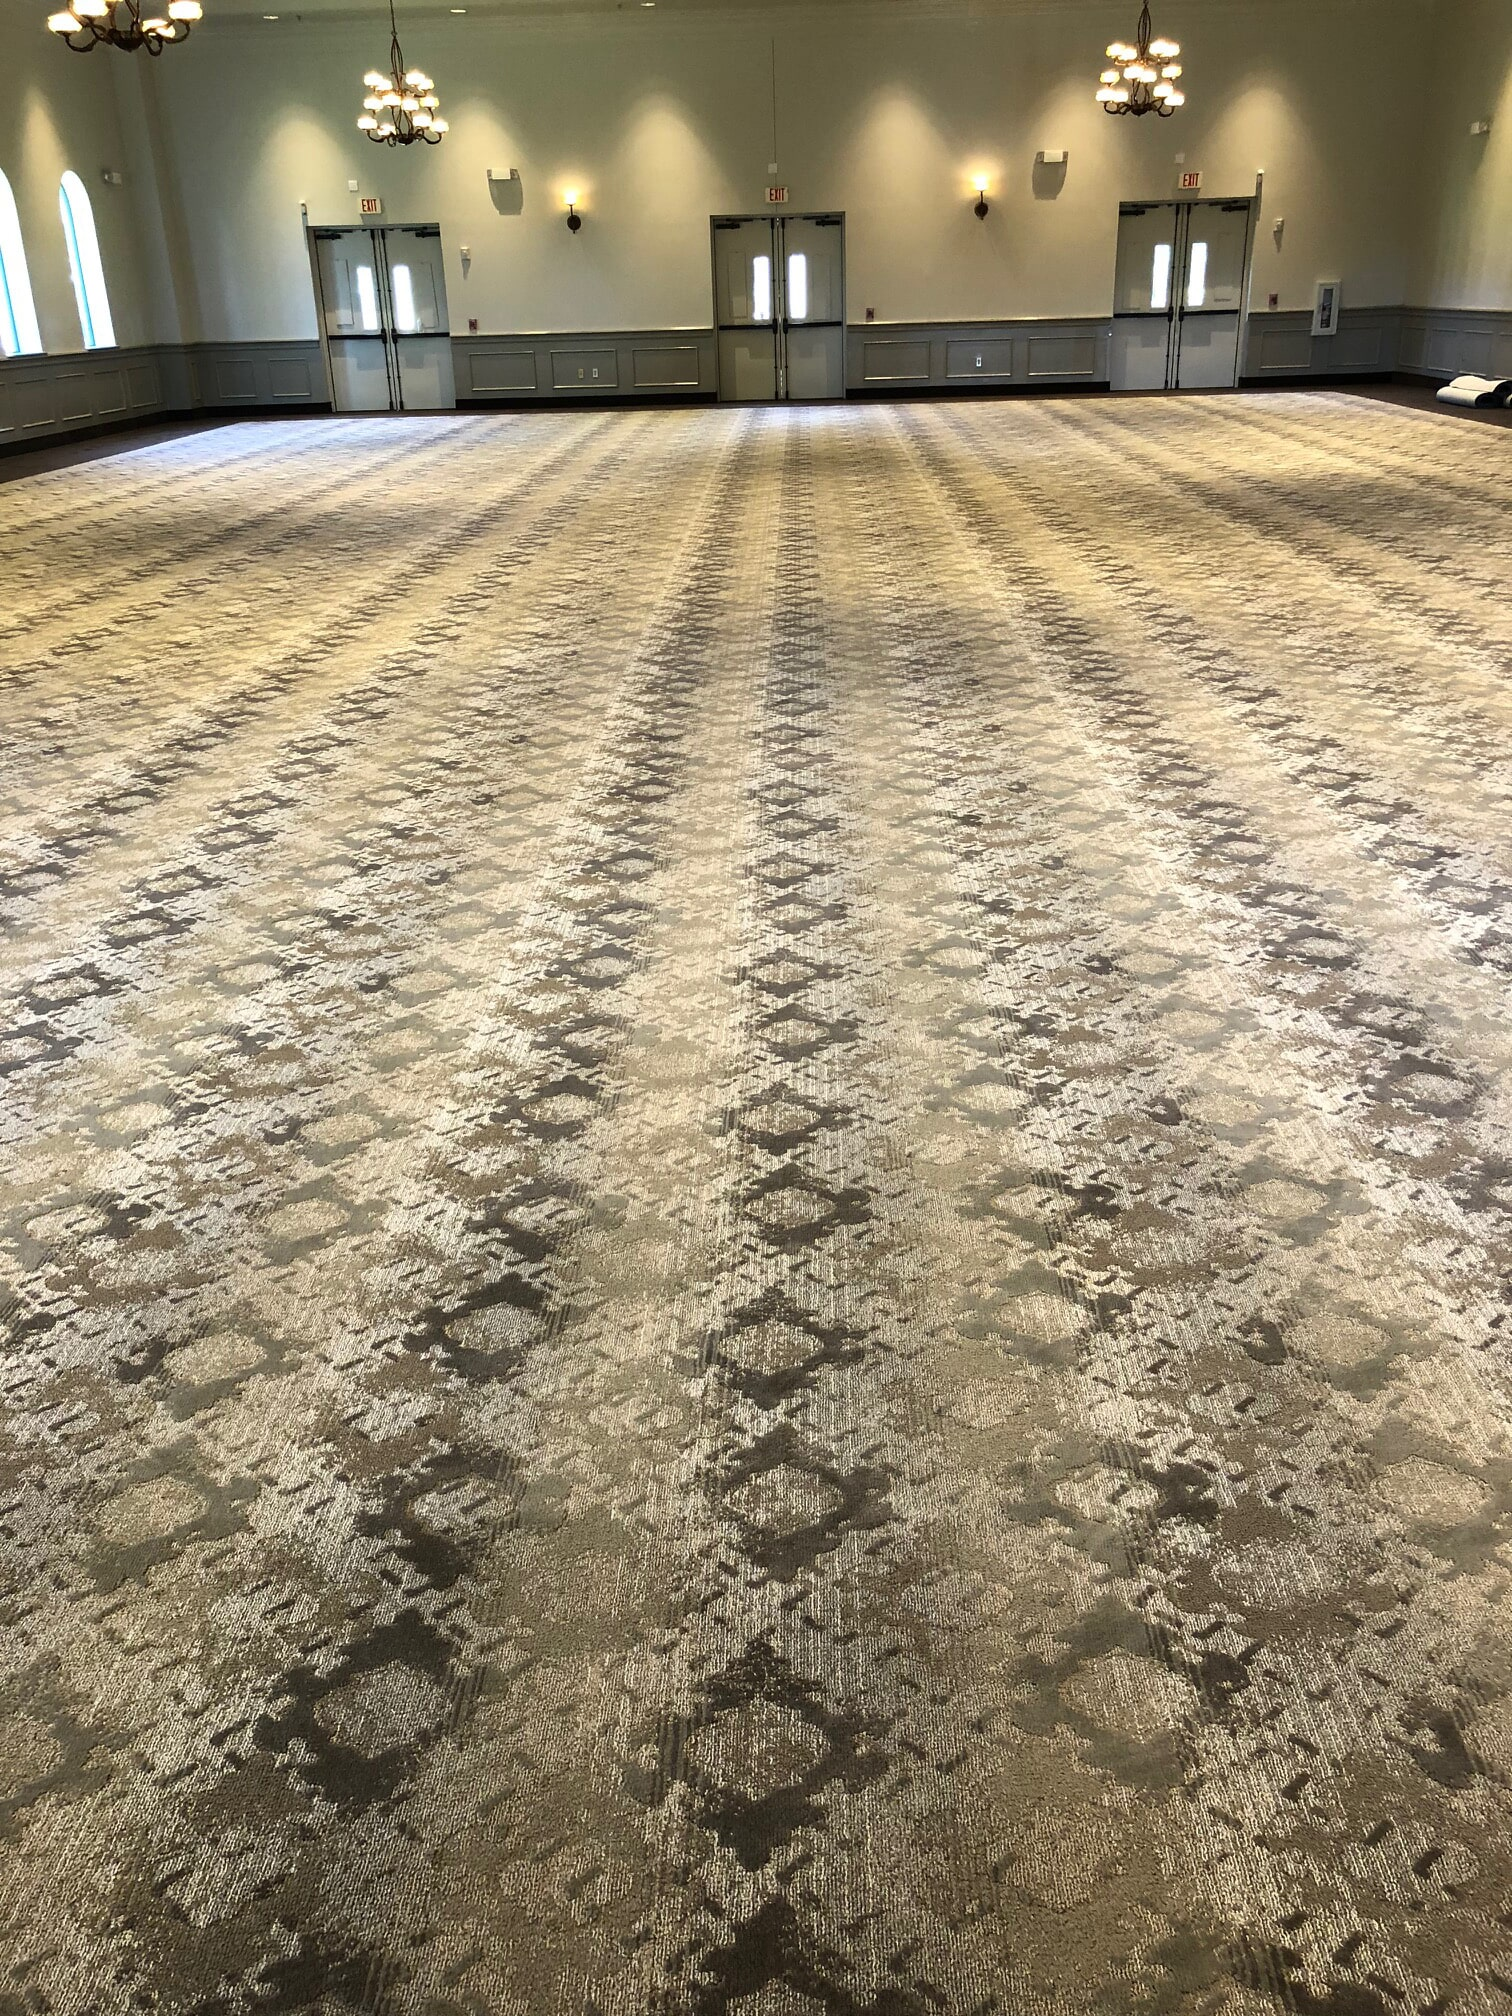 Commercial carpet from The Flooring Center in Windermere, FL